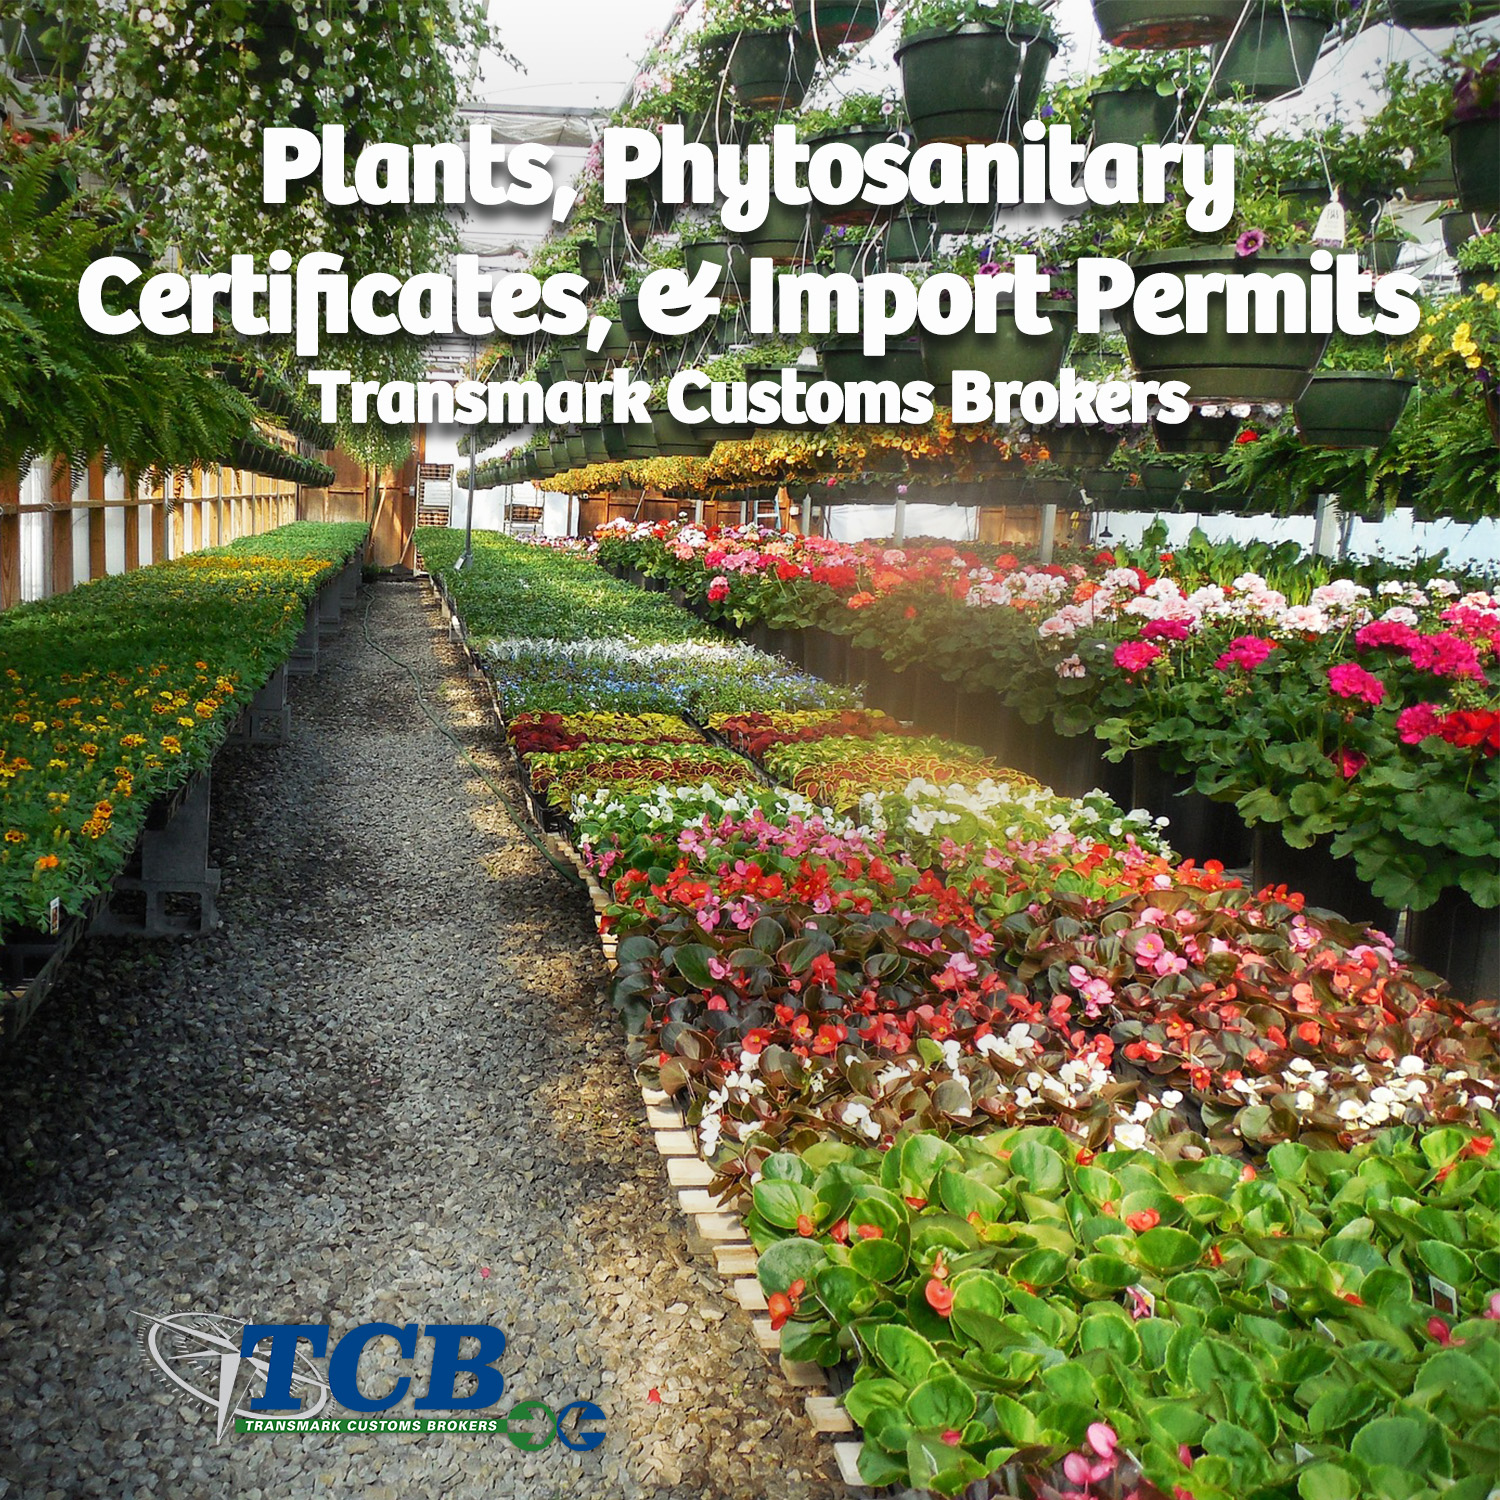 TCB Blog Plants, Phytosanitary Certificates, and Import Permits.jpg